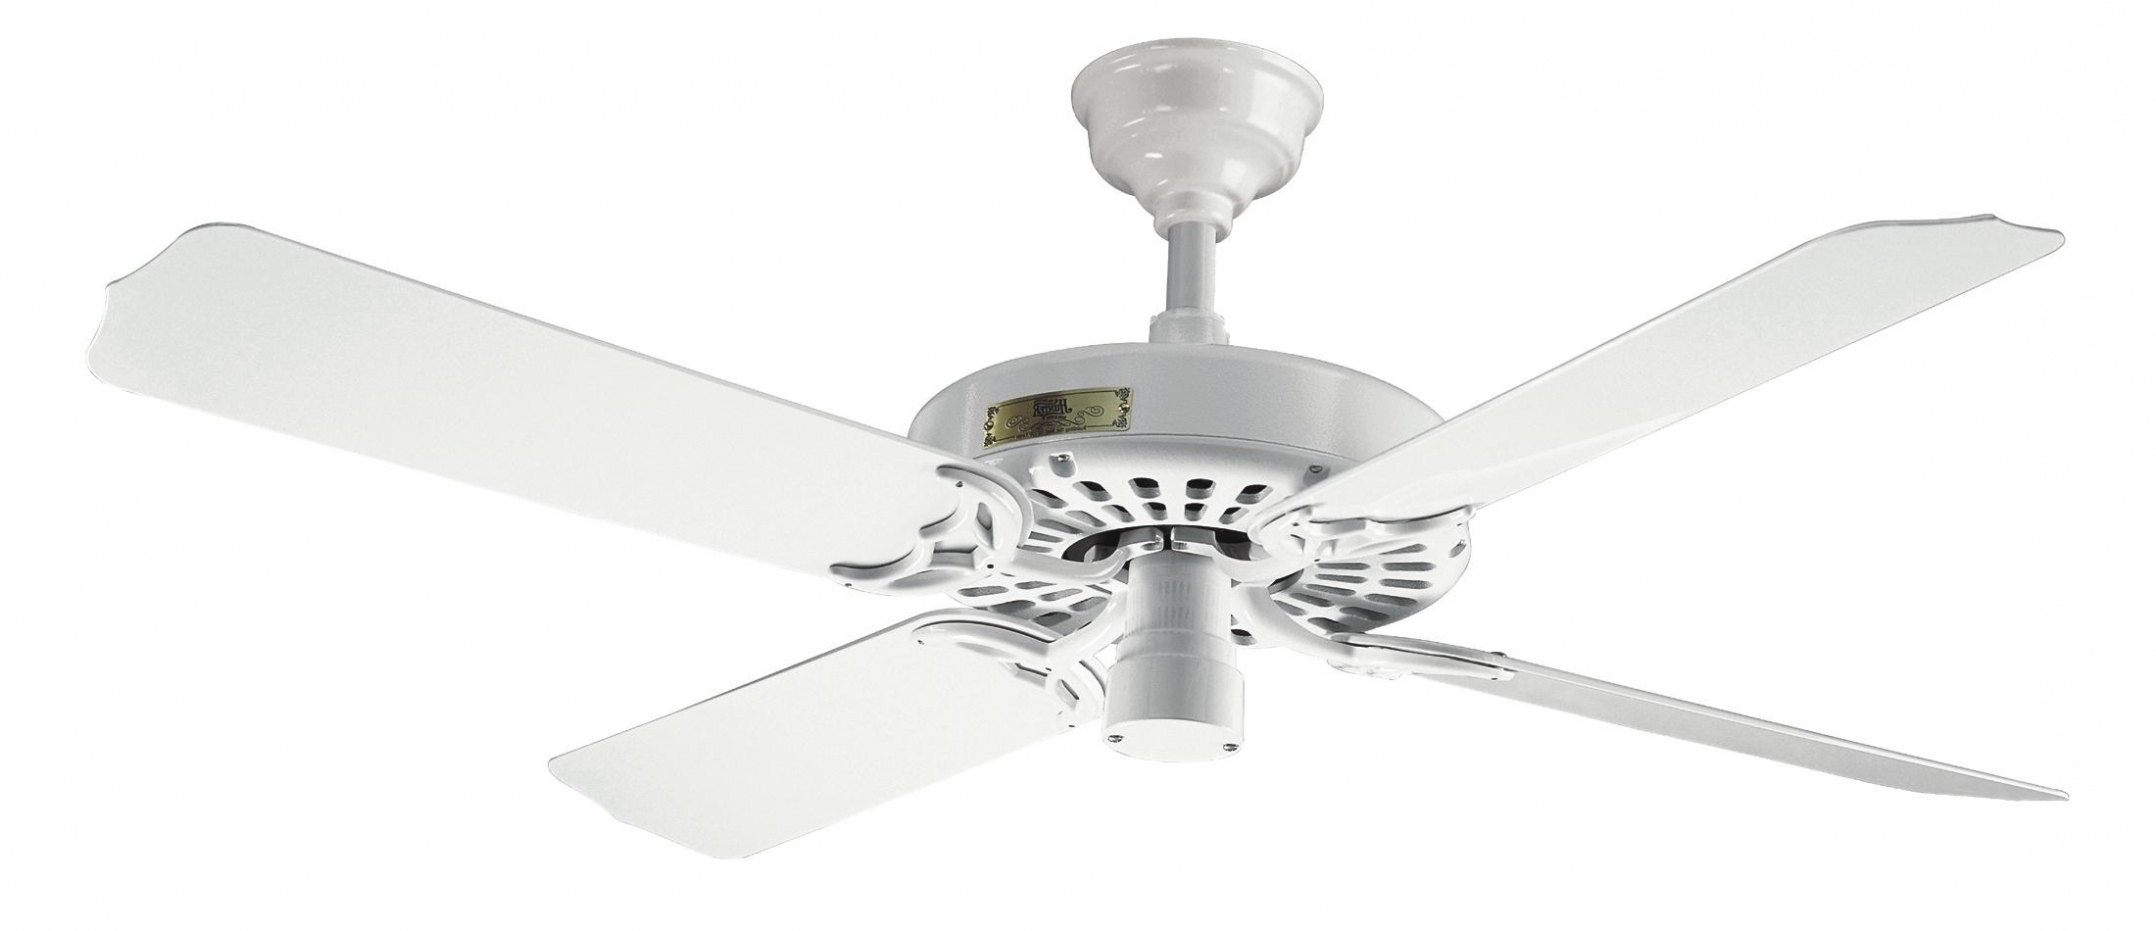 Hunter Outdoor Ceiling Fans With Lights And Remote – Outdoor Lighting Inside Well Liked Hunter Outdoor Ceiling Fans With Lights And Remote (View 7 of 20)